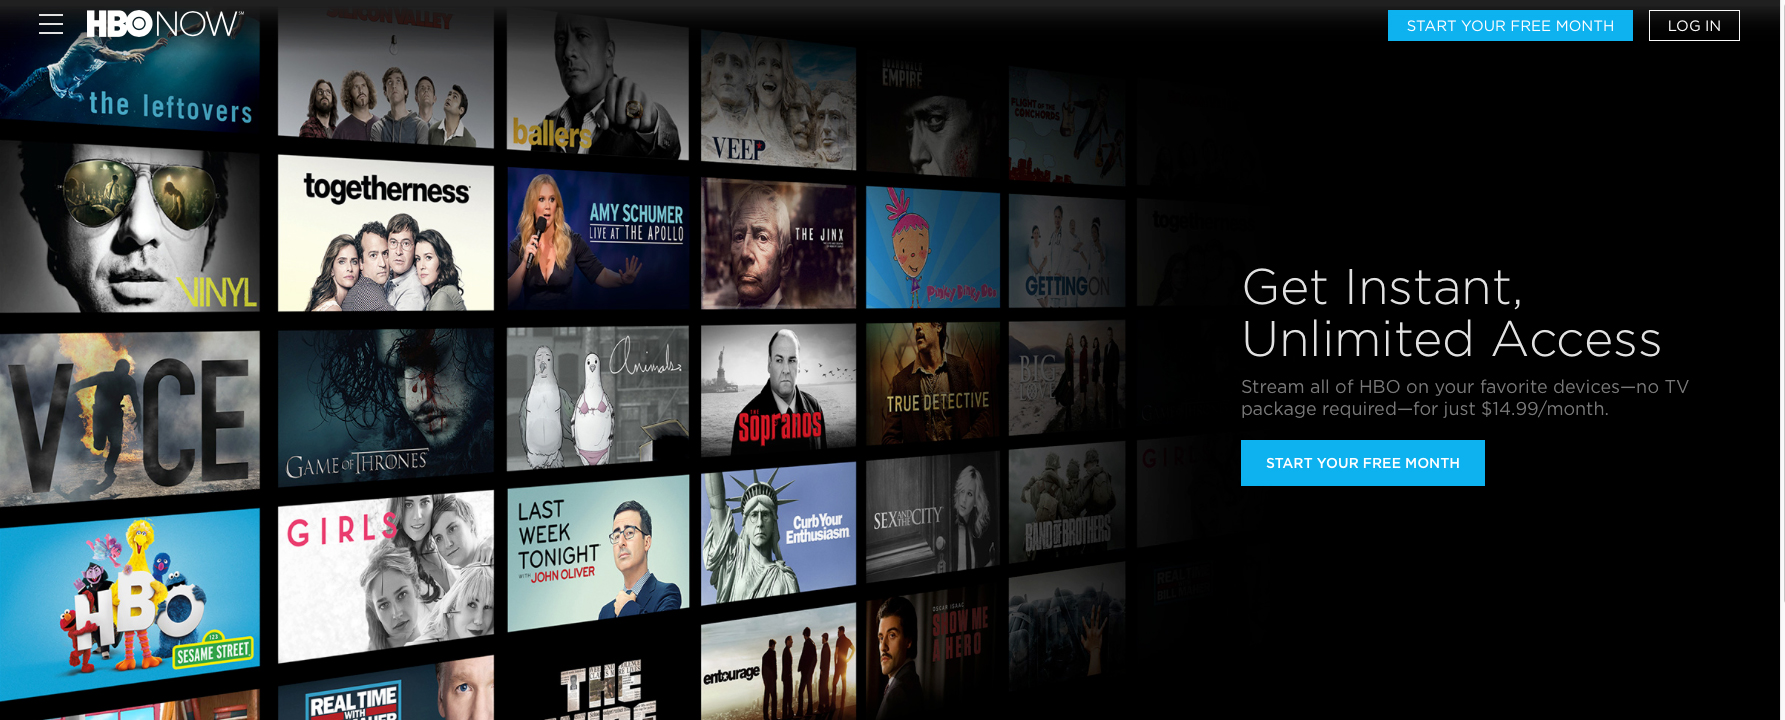 After almost a year, HBO Now has around 800,000 paying subscribers